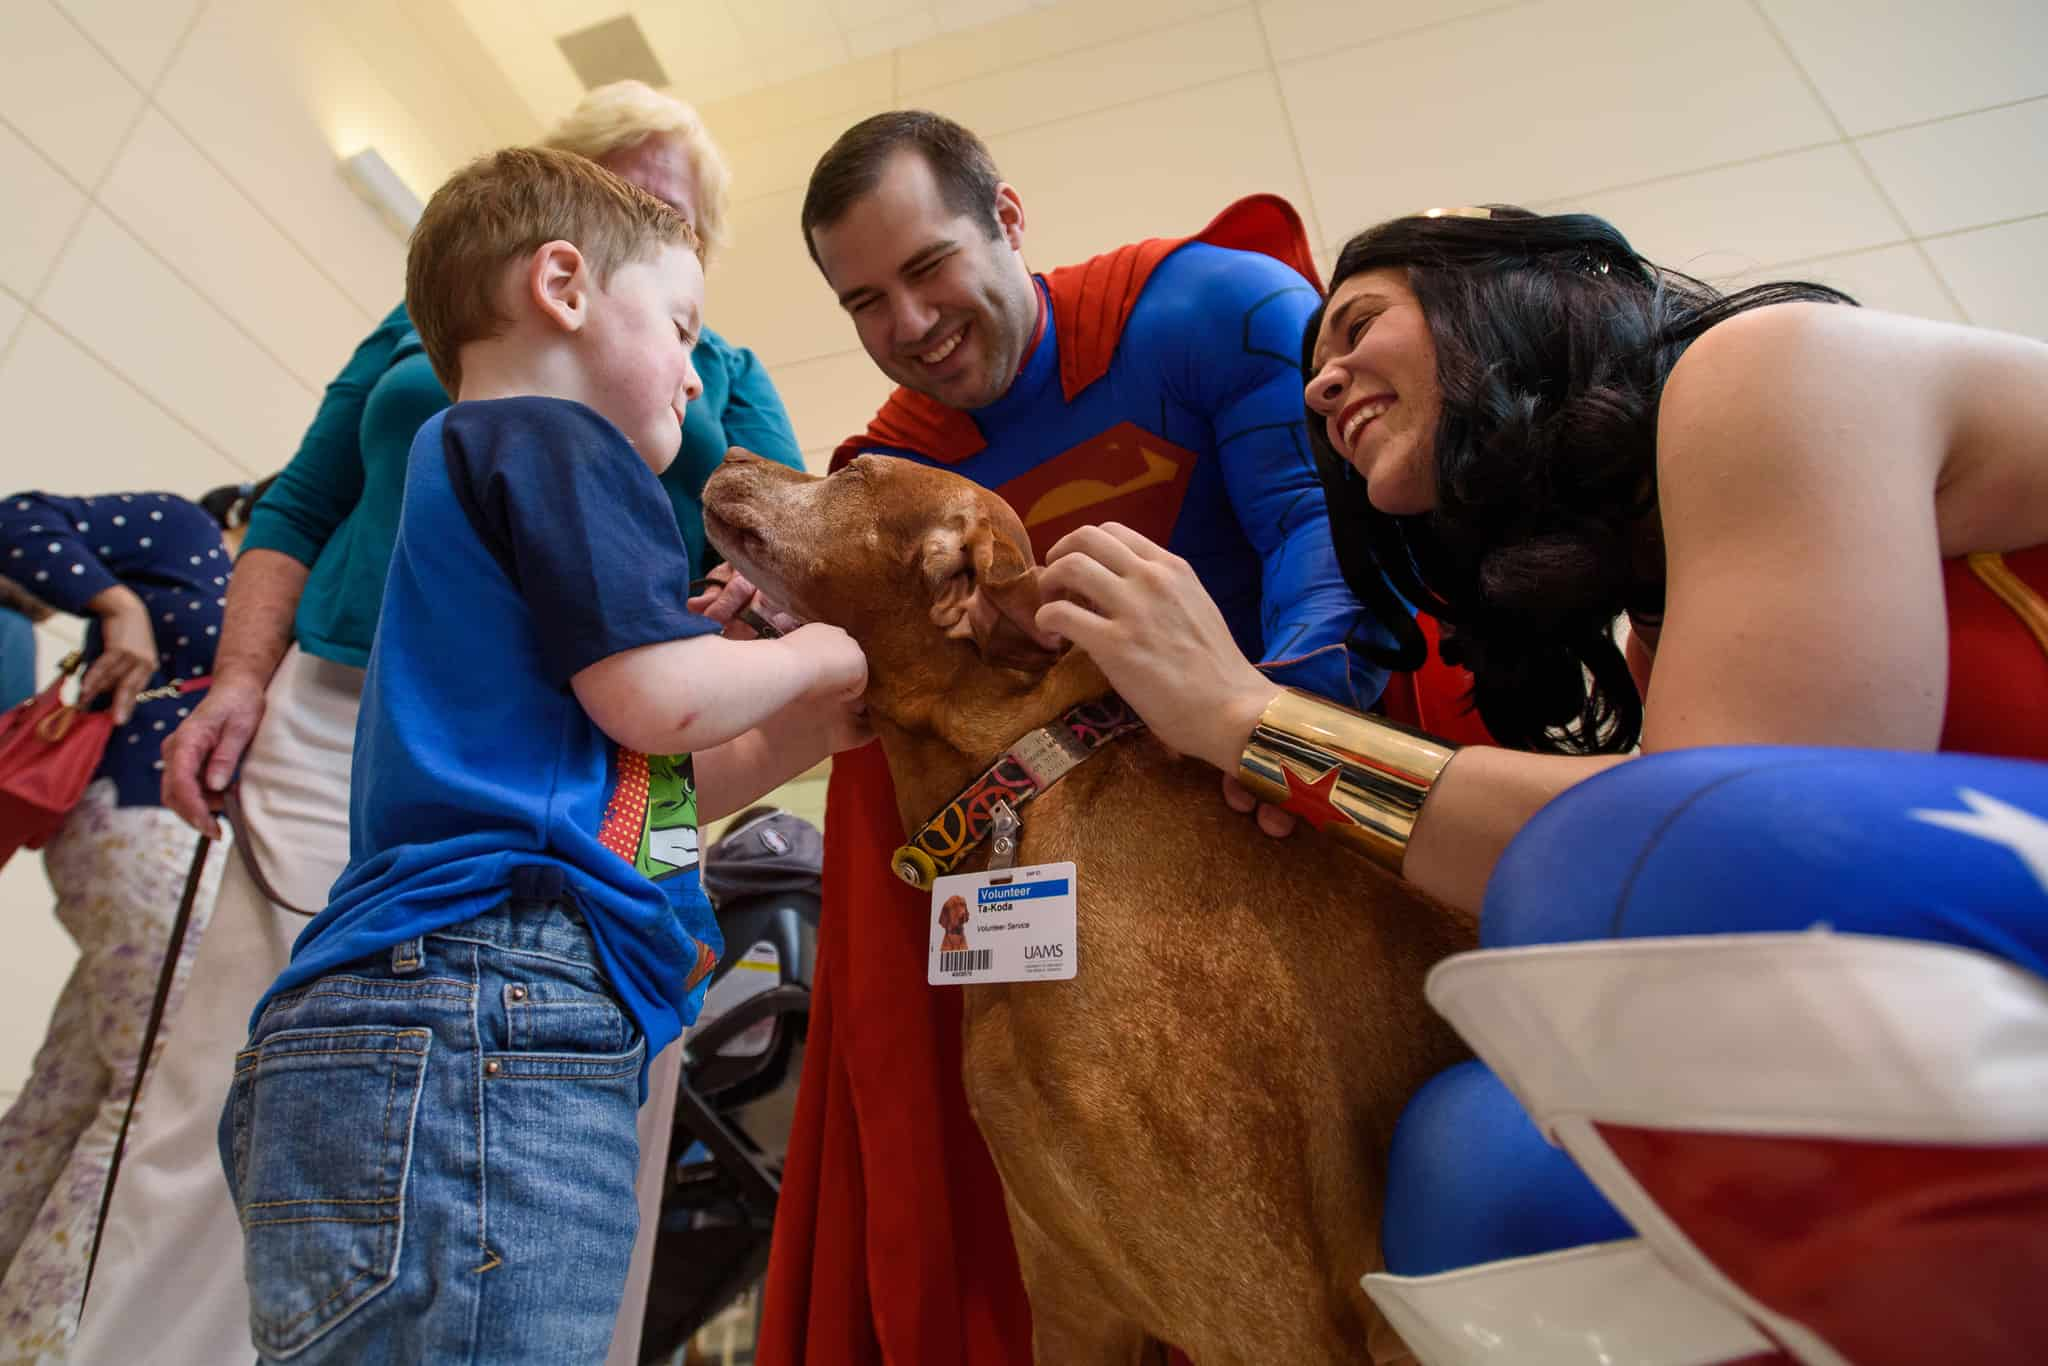 Hundreds of families attended the annual NICU Reunion held April 13 at UAMS Medical Center.